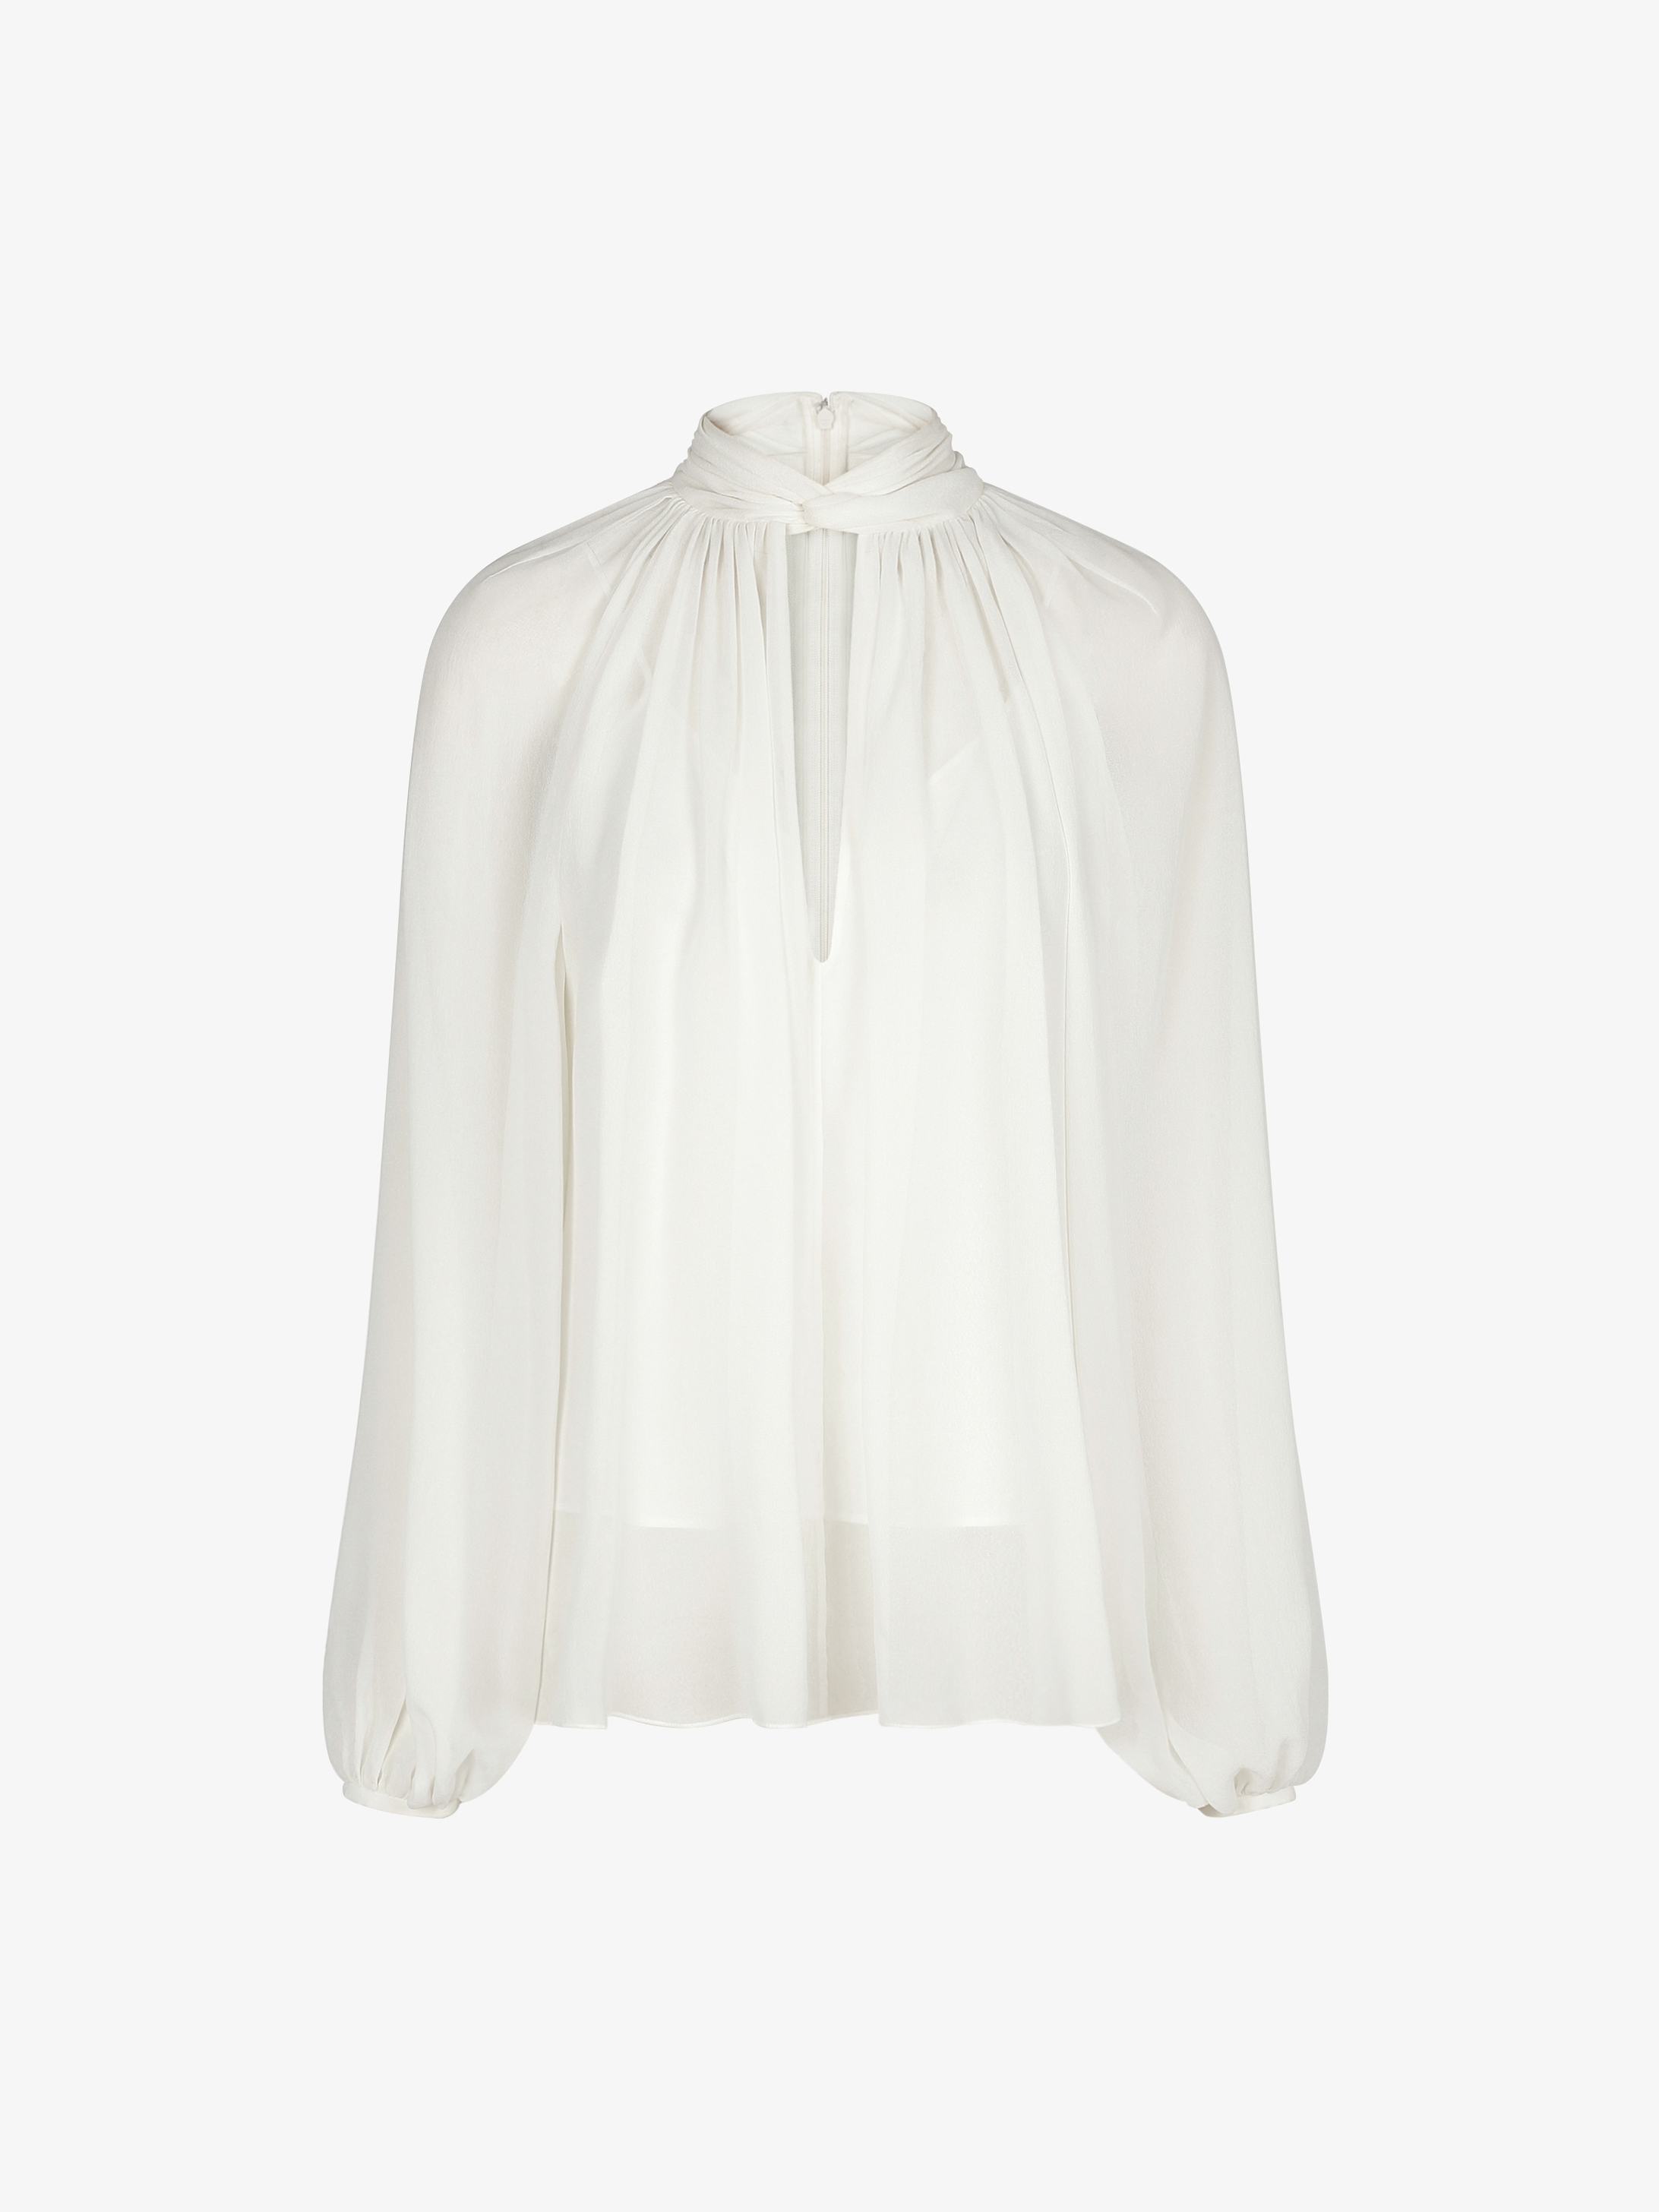 Blouse in silk with hang collar